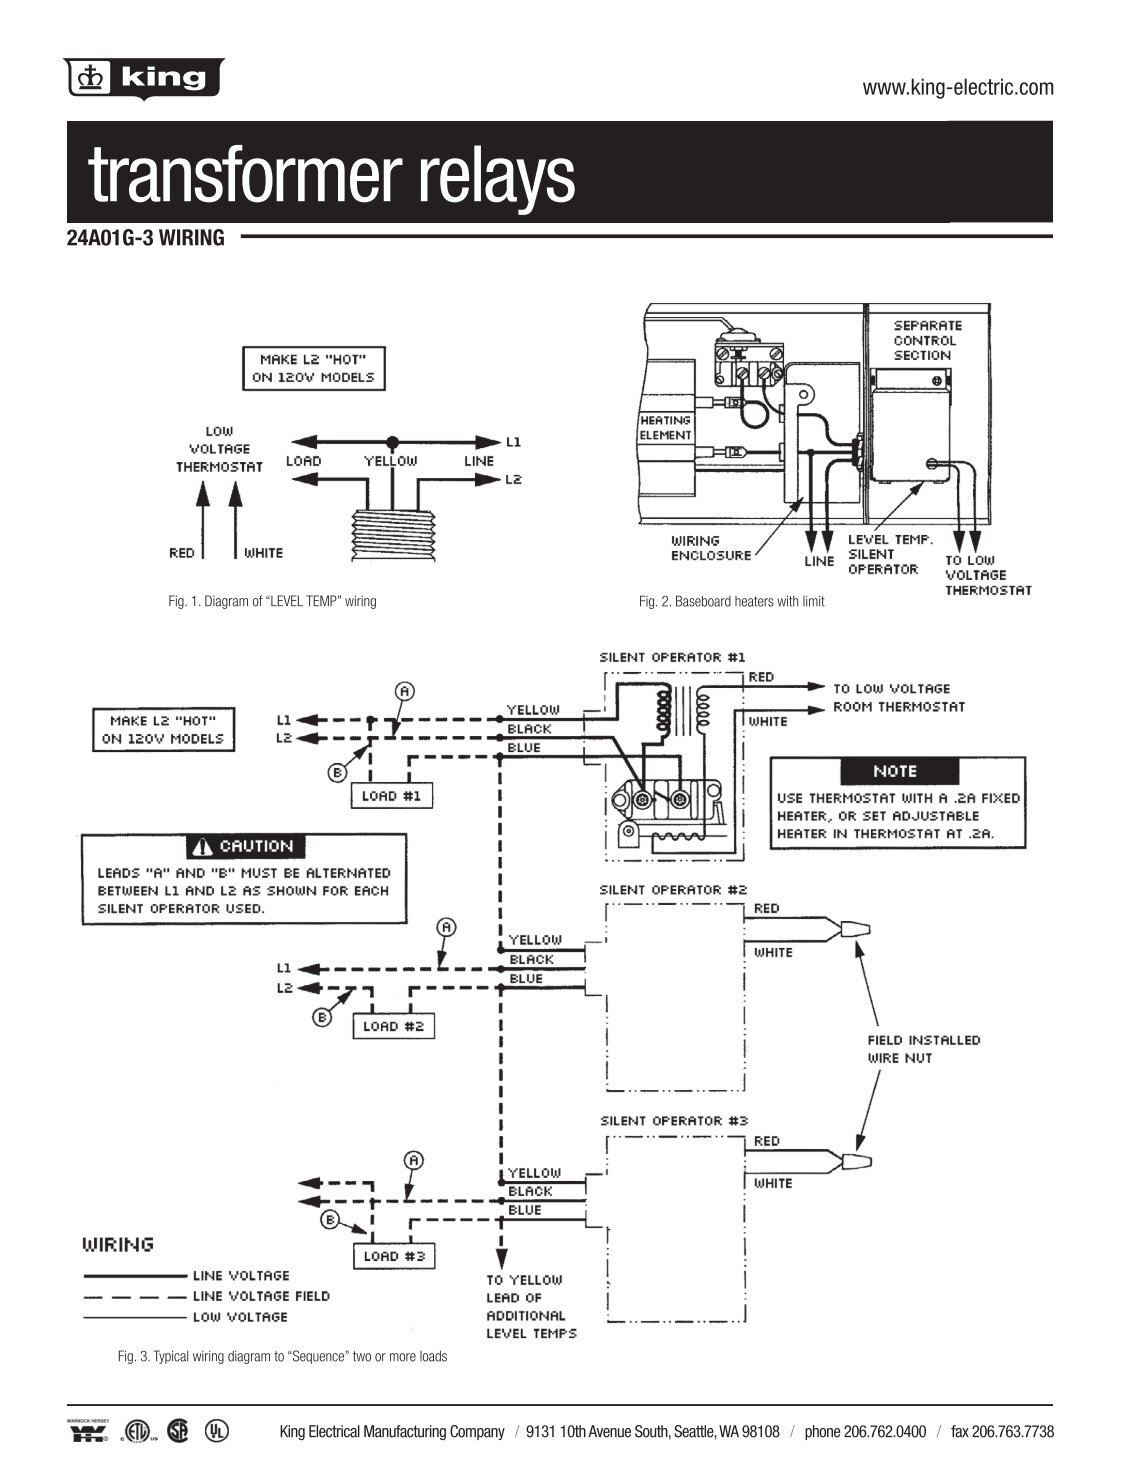 thermostat catalog 2012indd king electric?quality\\\\\\\\\=80 coleman furnace wiring diagram & click image for larger version coleman electric furnace wiring diagram at reclaimingppi.co